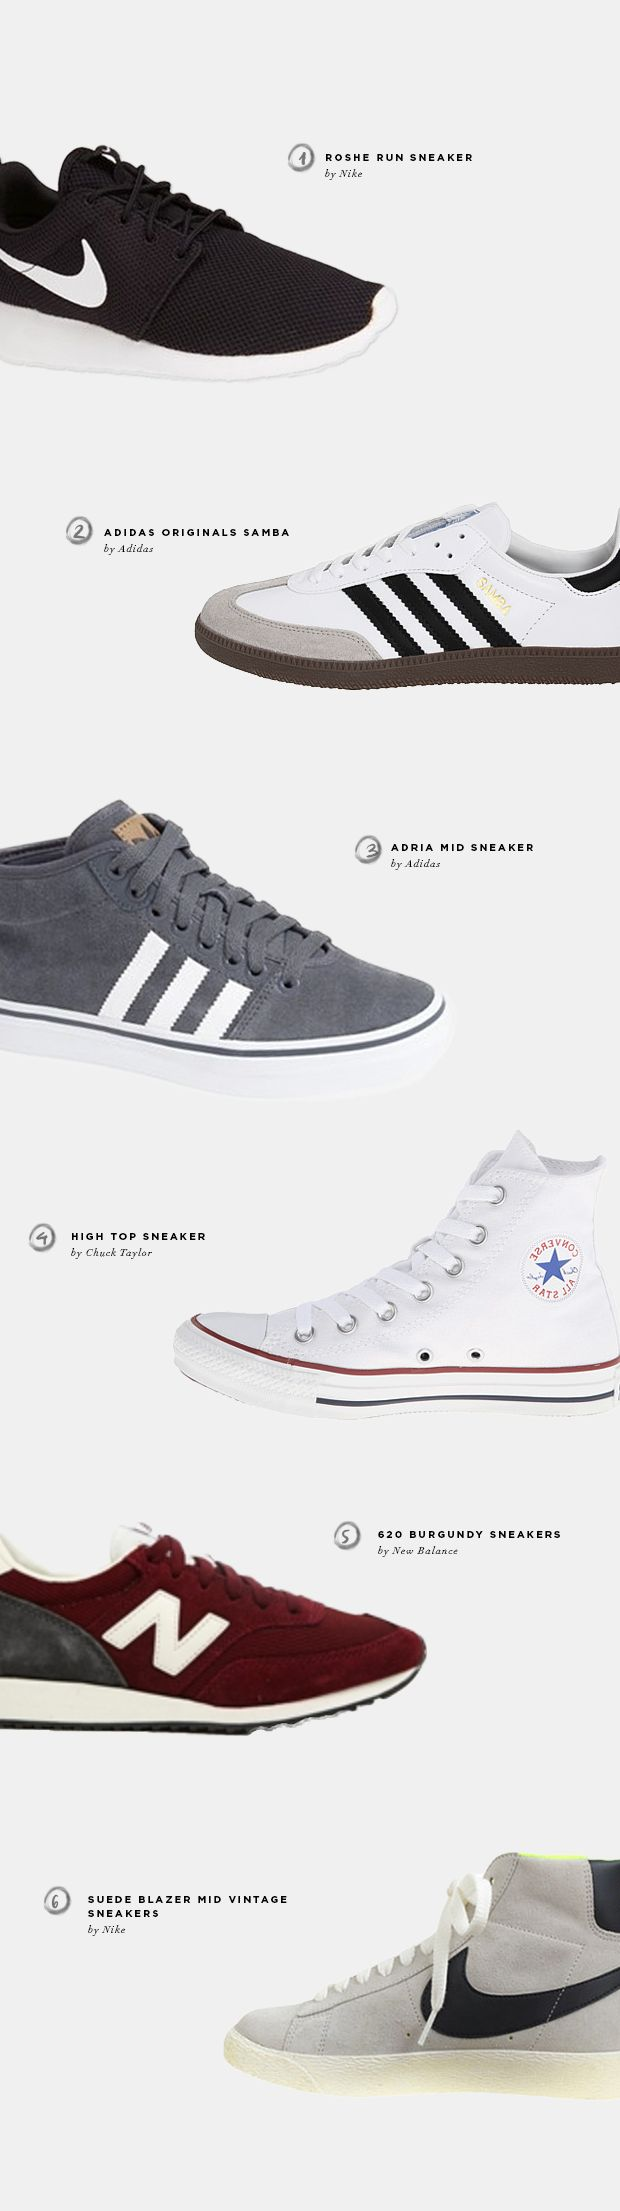 Are Chuck Taylors Good Running Shoes